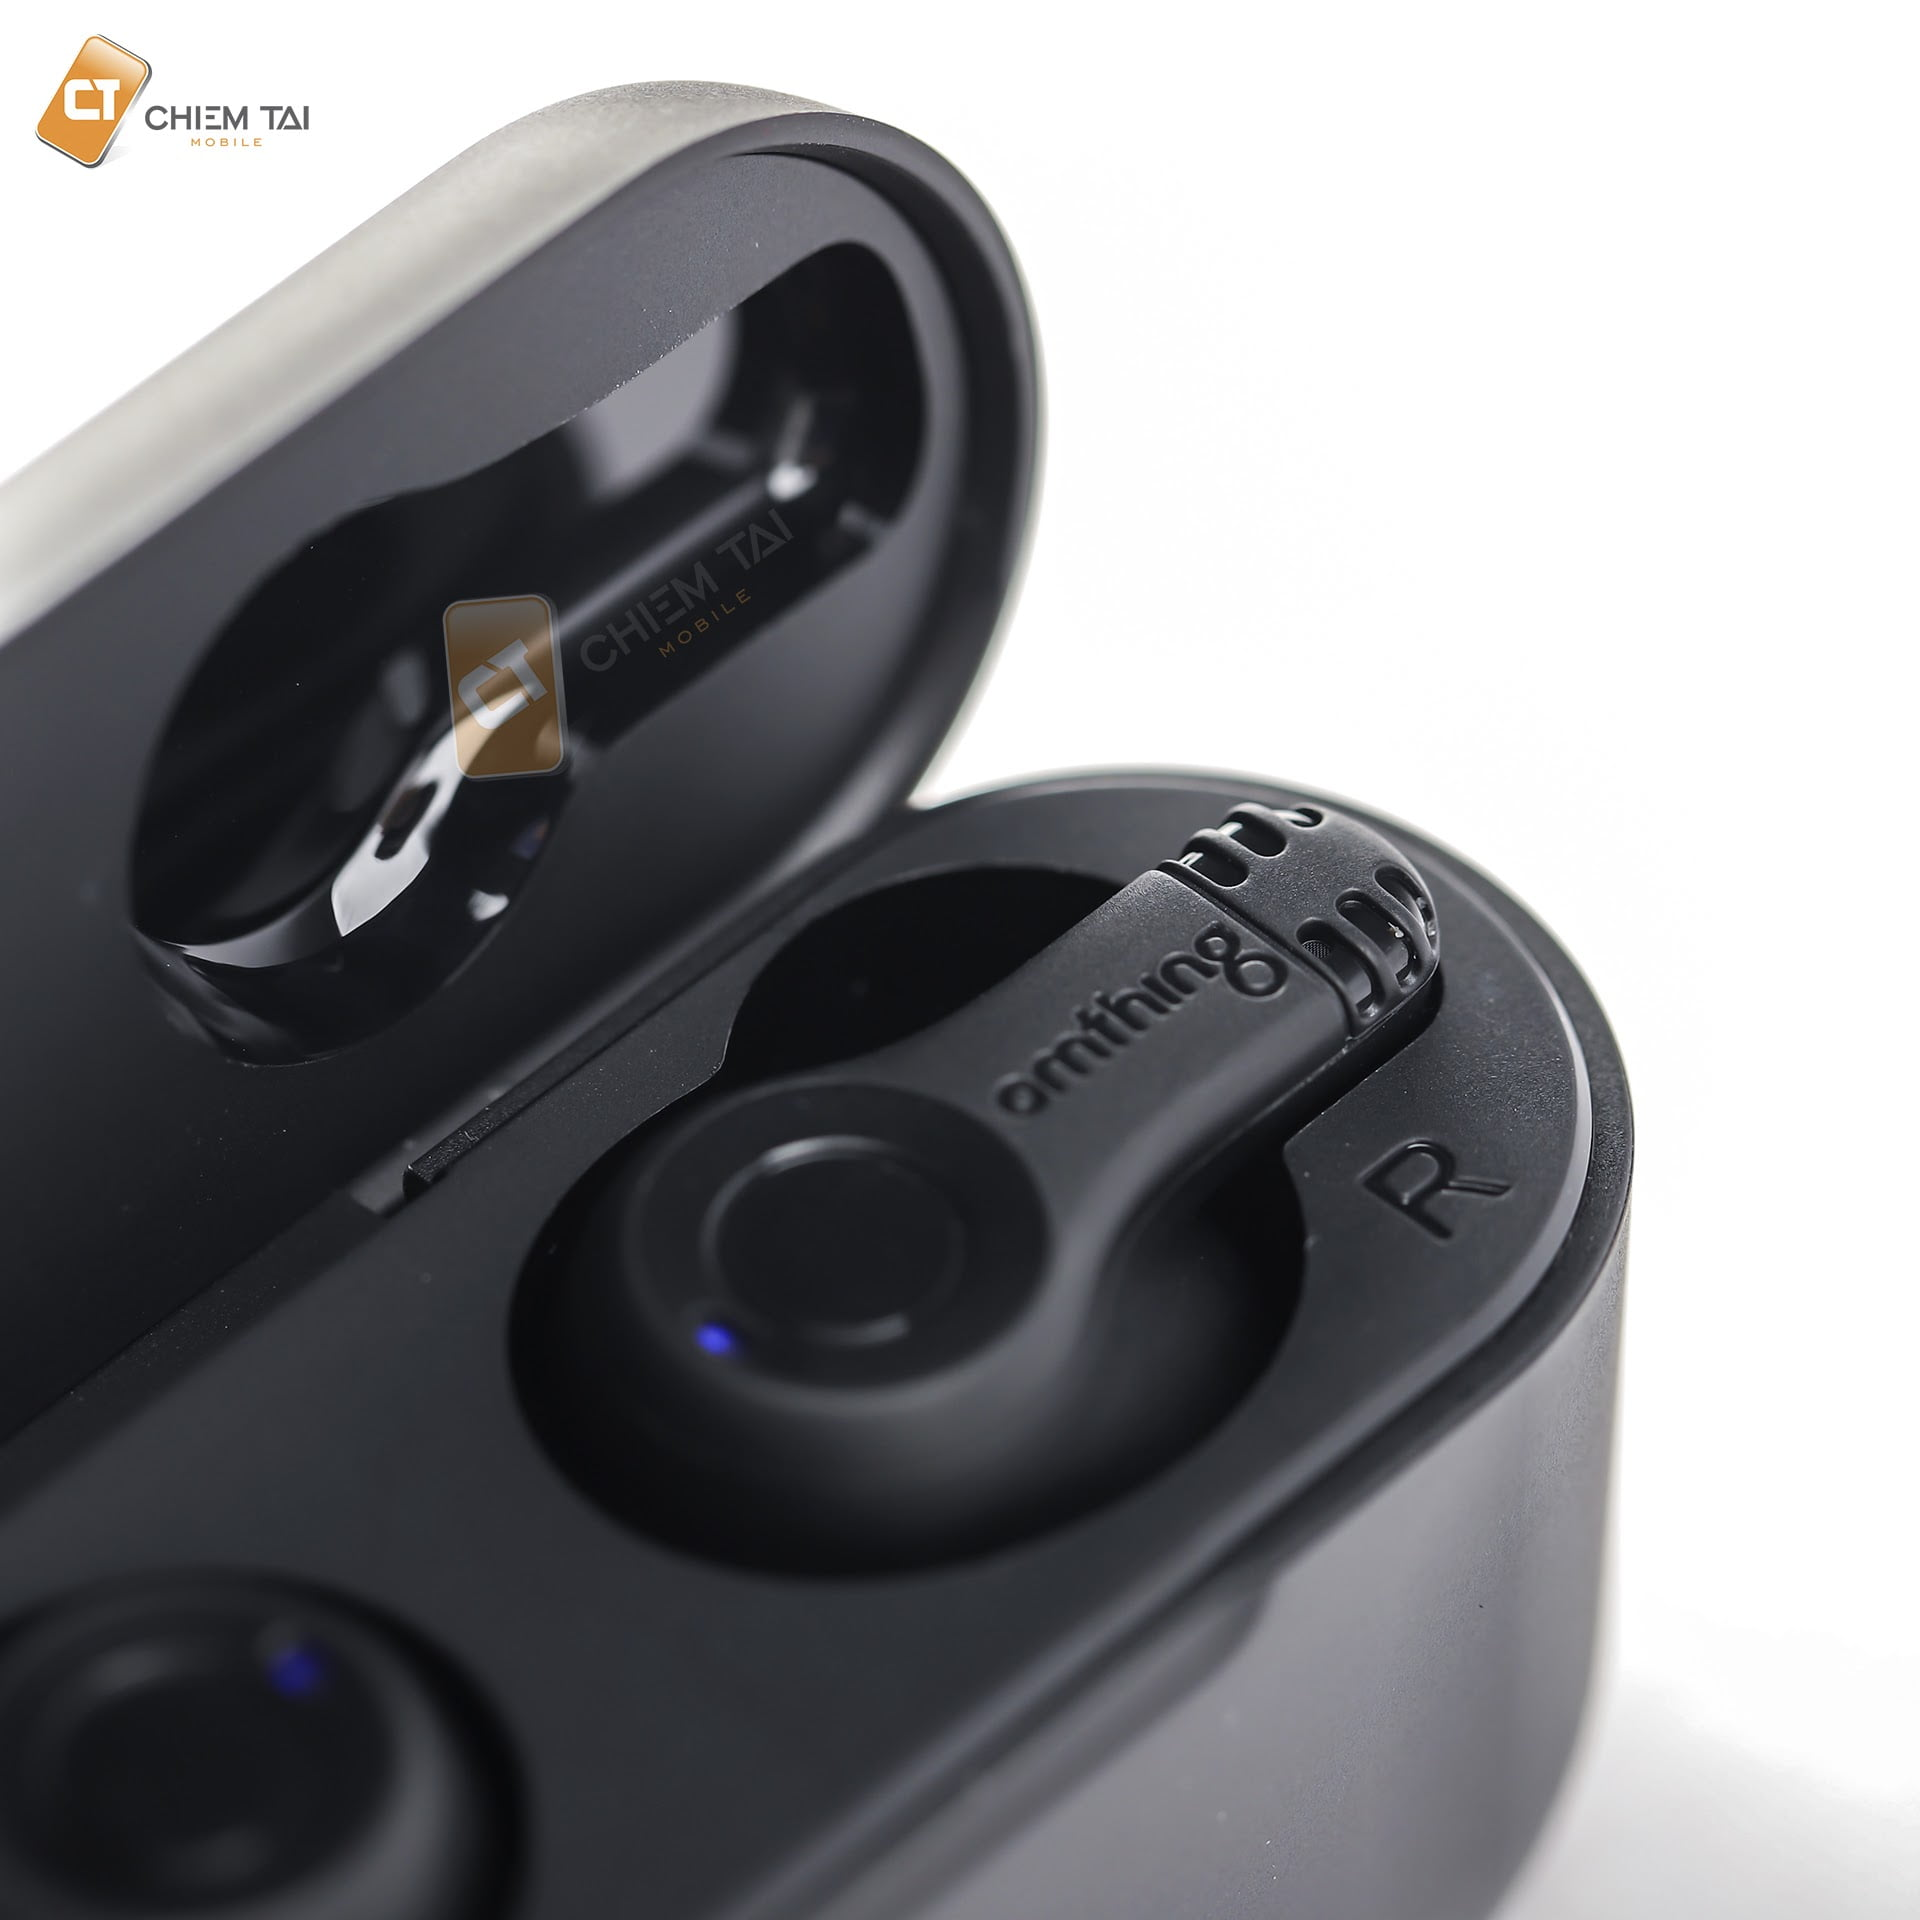 tai nghe bluetooth true wireless xiaomi 1more omthing airfree eo002 60506382527f1